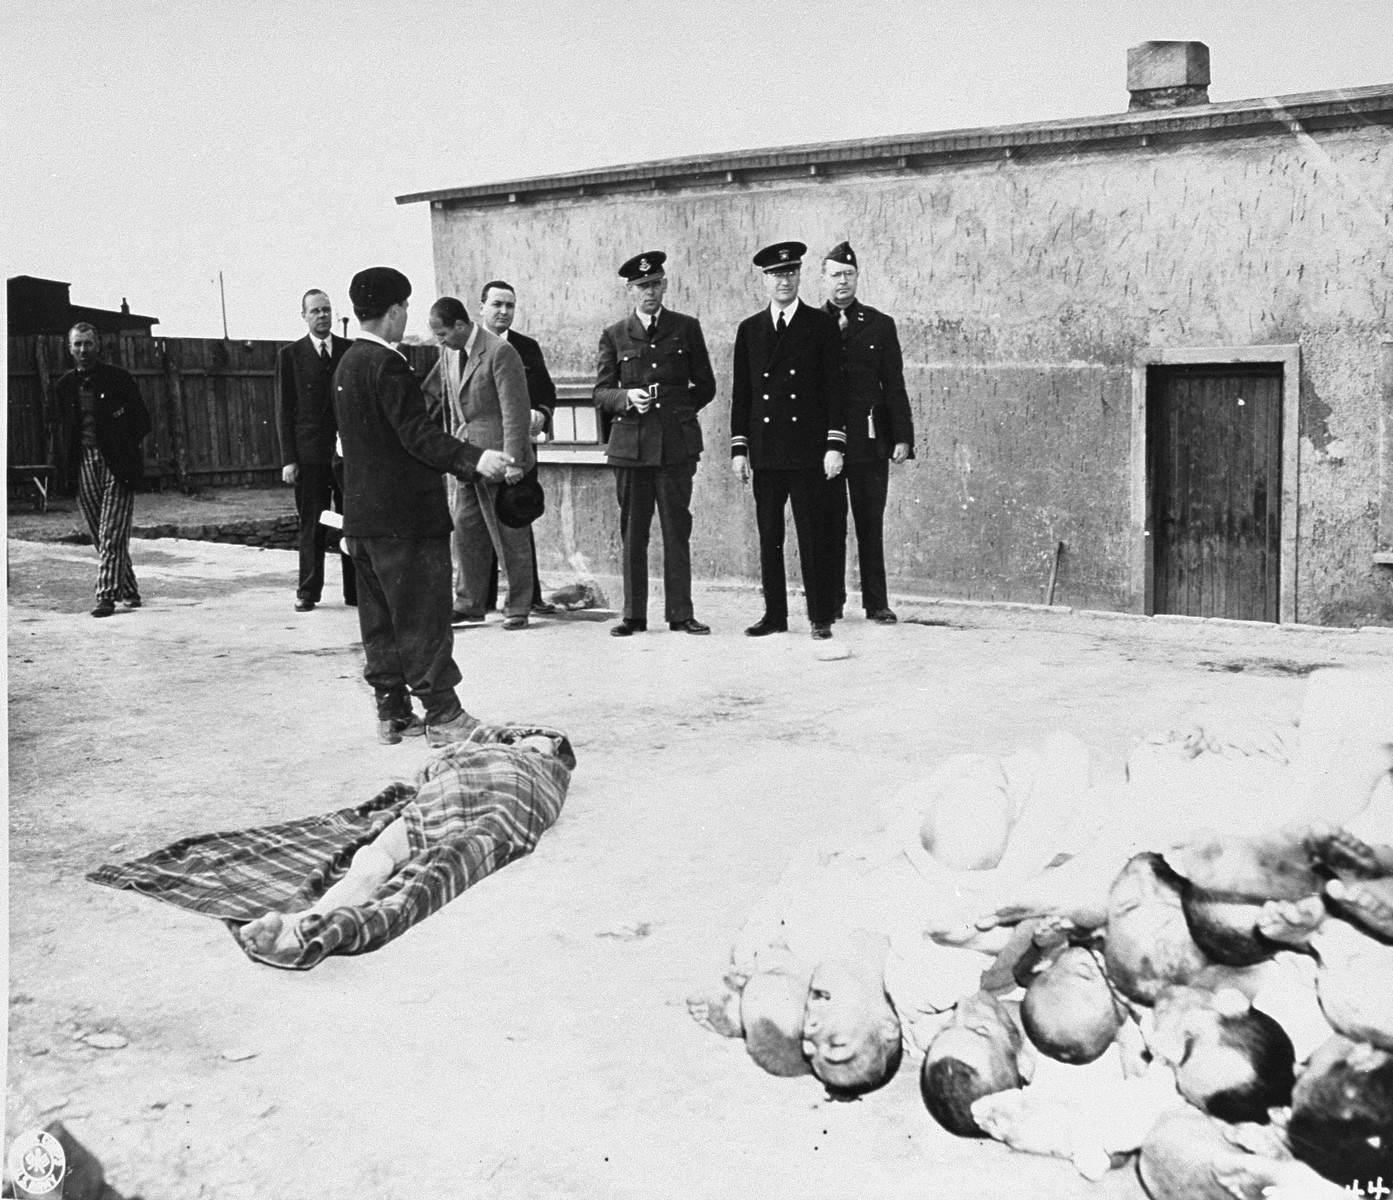 Members of the Allied War Crimes Commission are shown the bodies of prisoners killed in Buchenwald concentration camp.